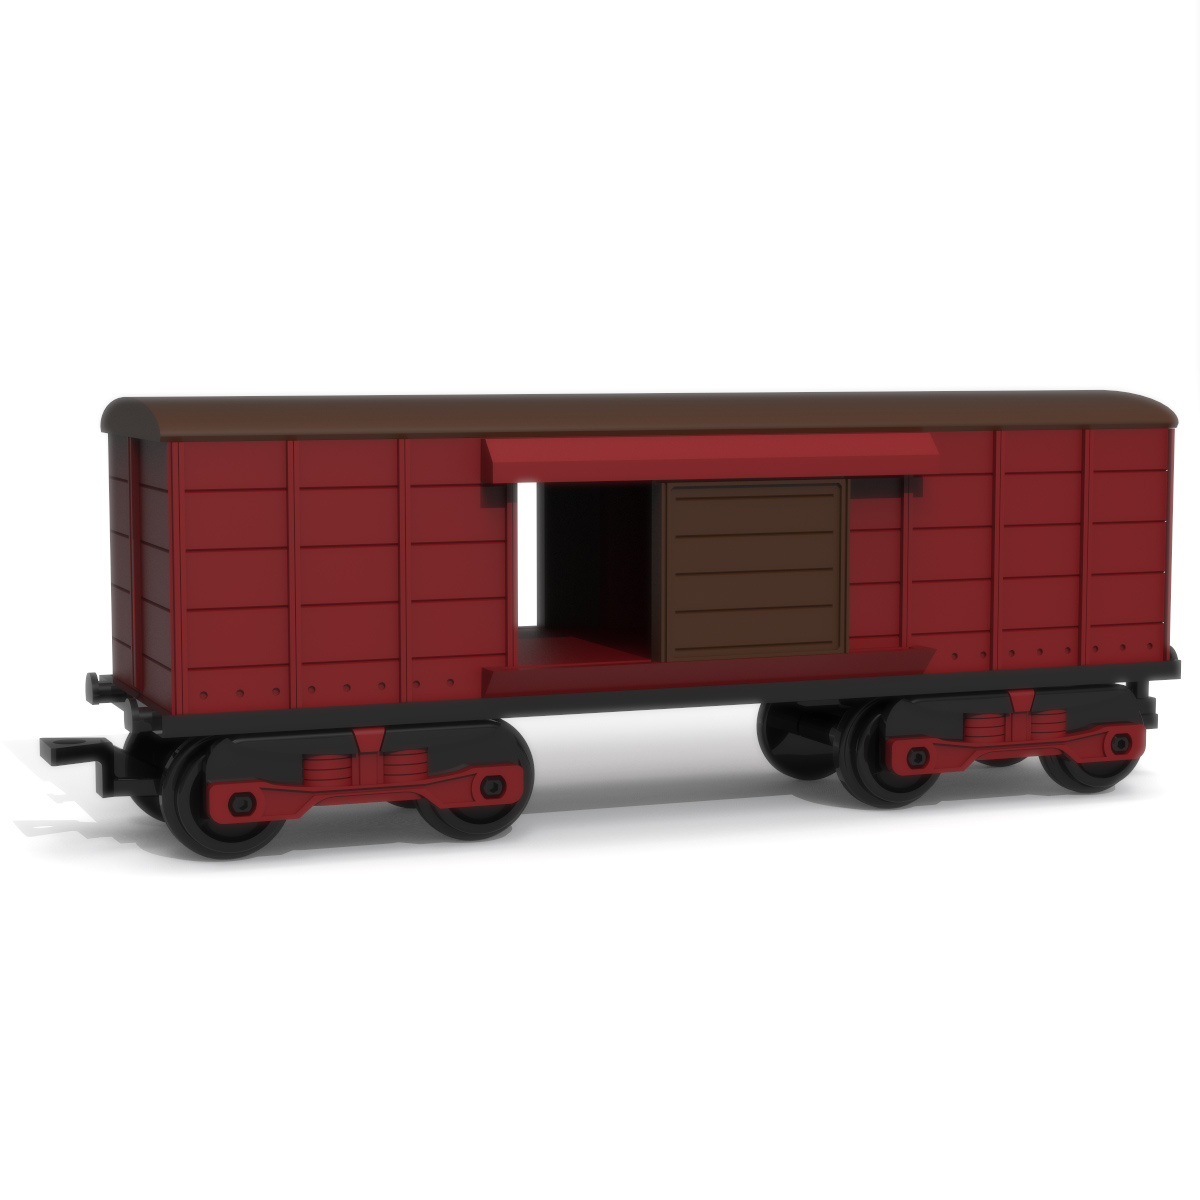 Freight Wagon, 3D Printer Models